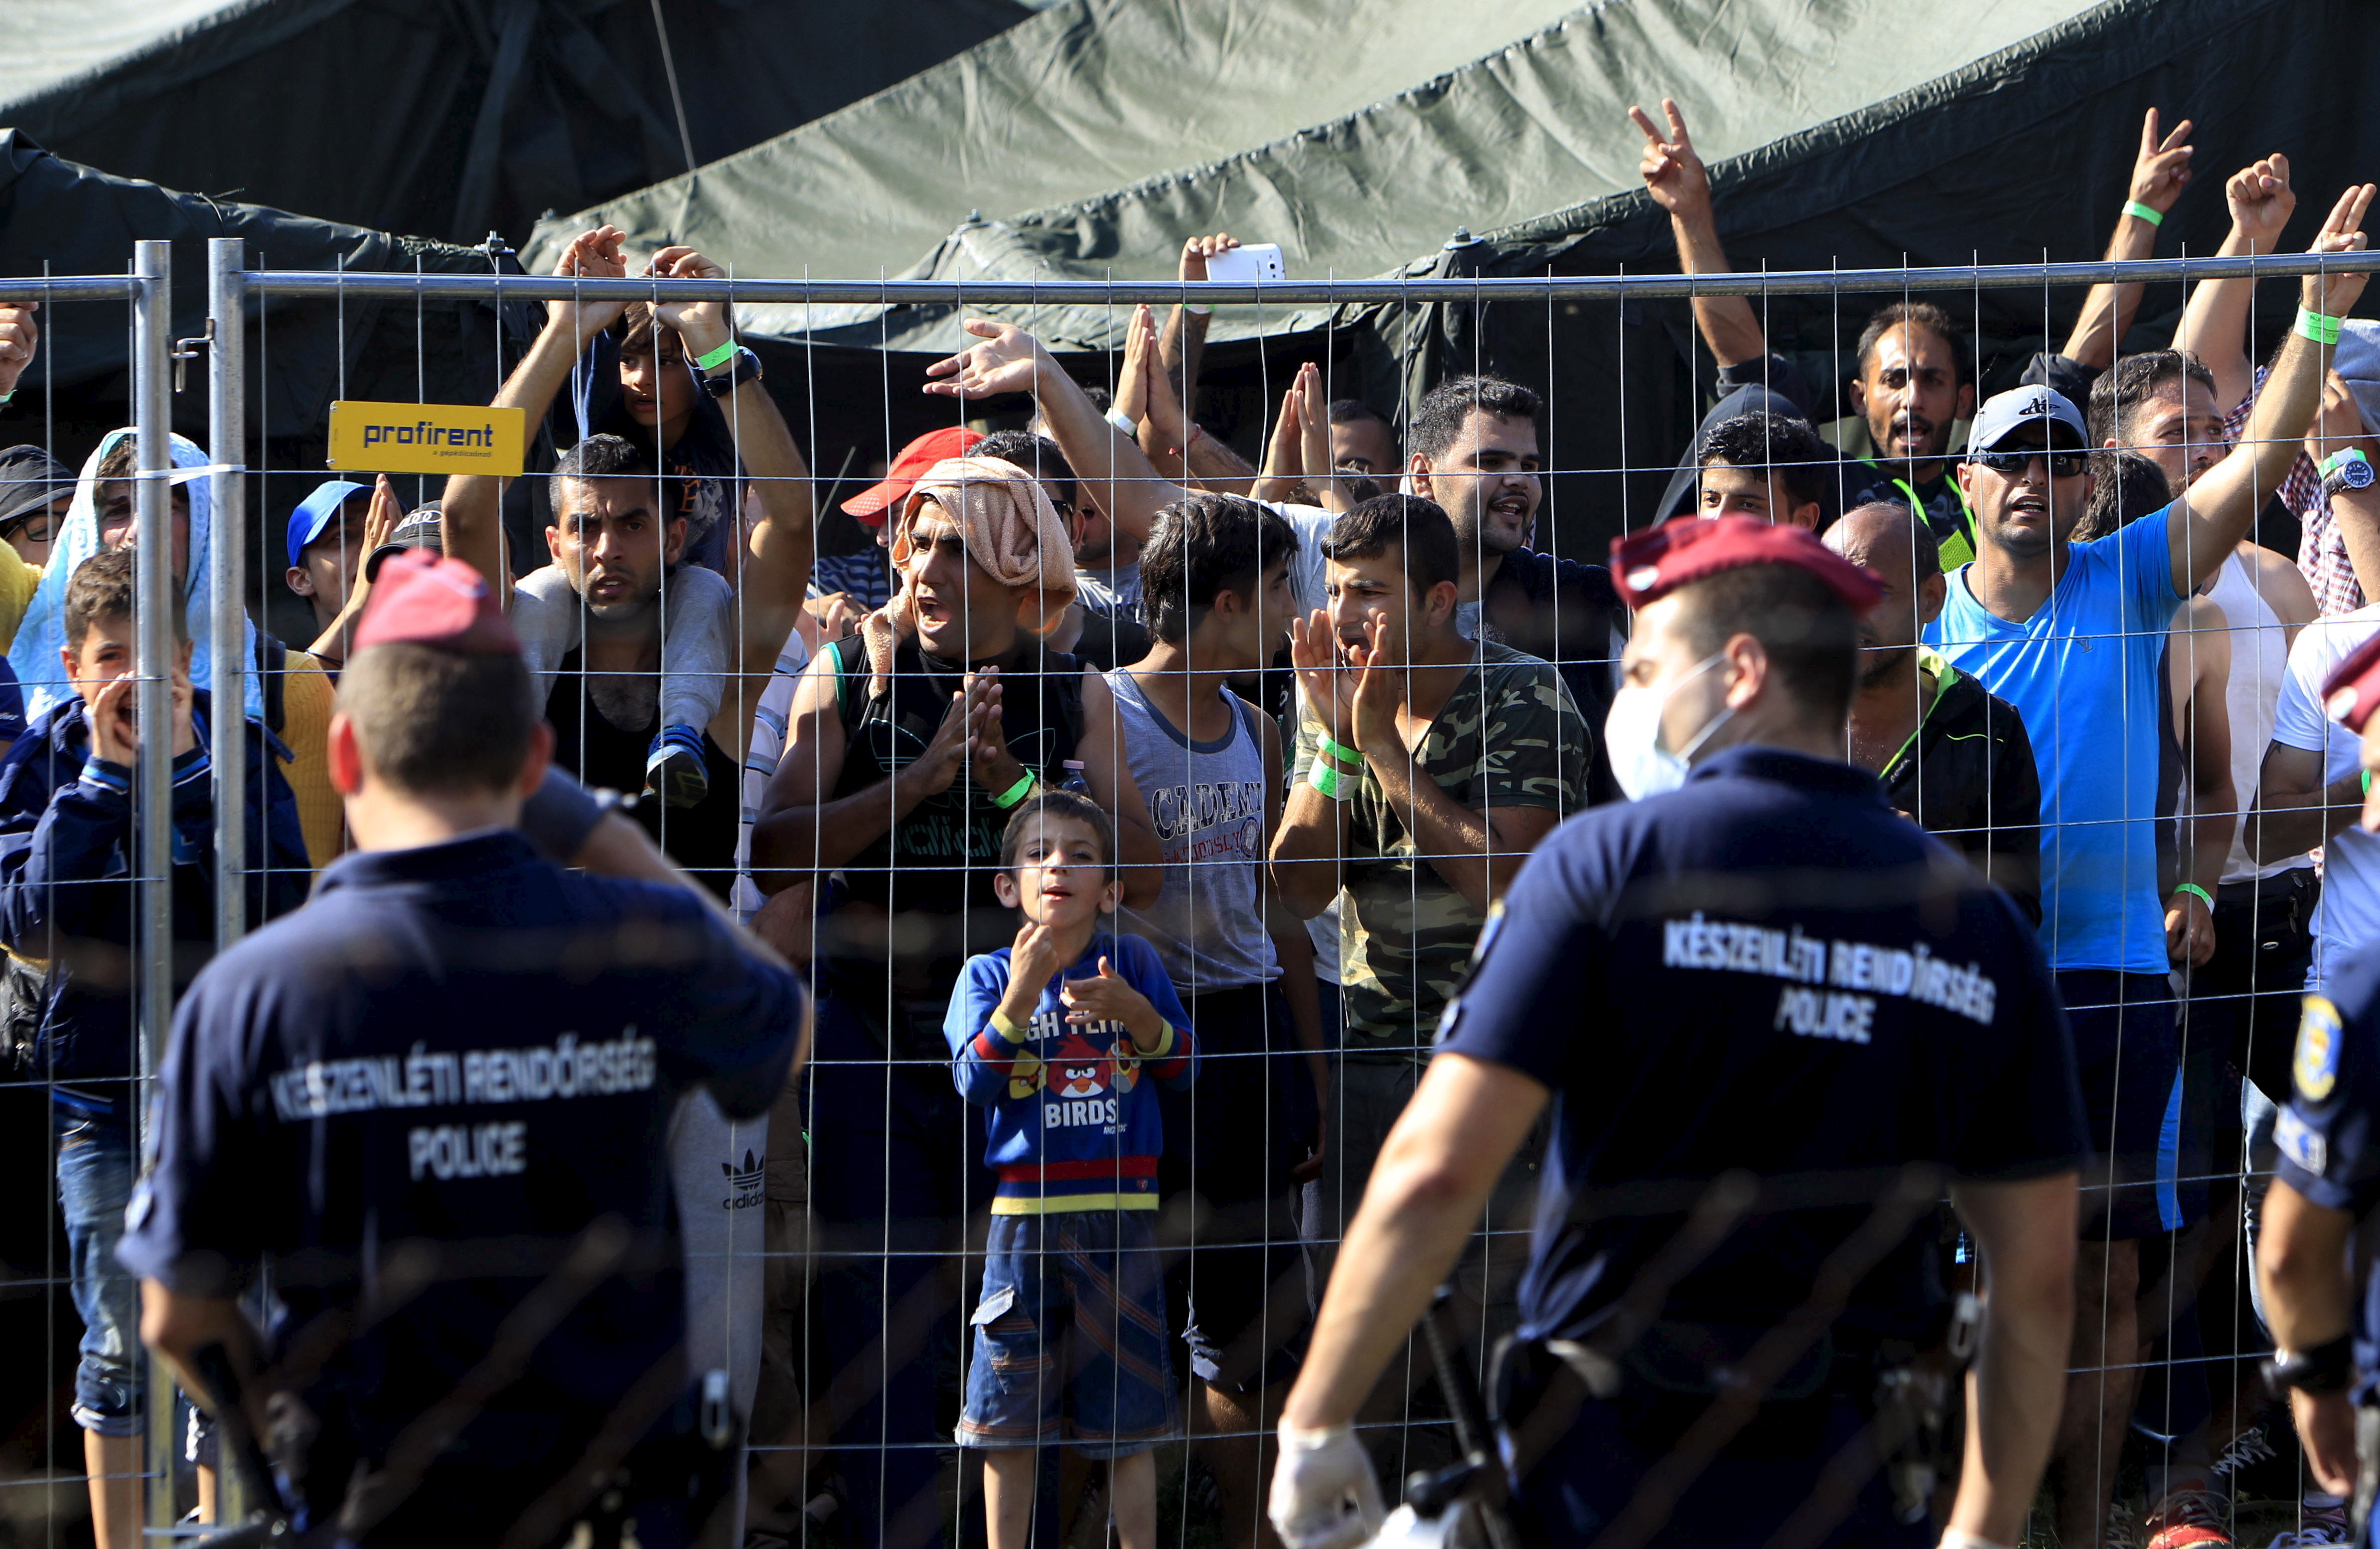 Syrian migrants shout slogans at a refugee camp in Roszke, Hungary, Aug. 28, 2015.